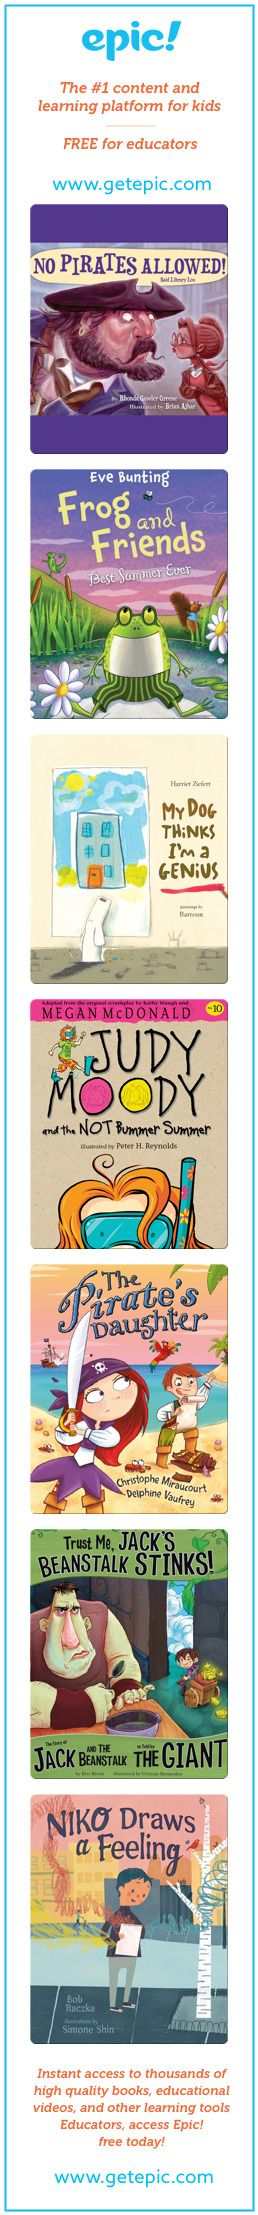 2017 Summer Reading List - Books for Kids 6-8 – Read FREE for 30 days!